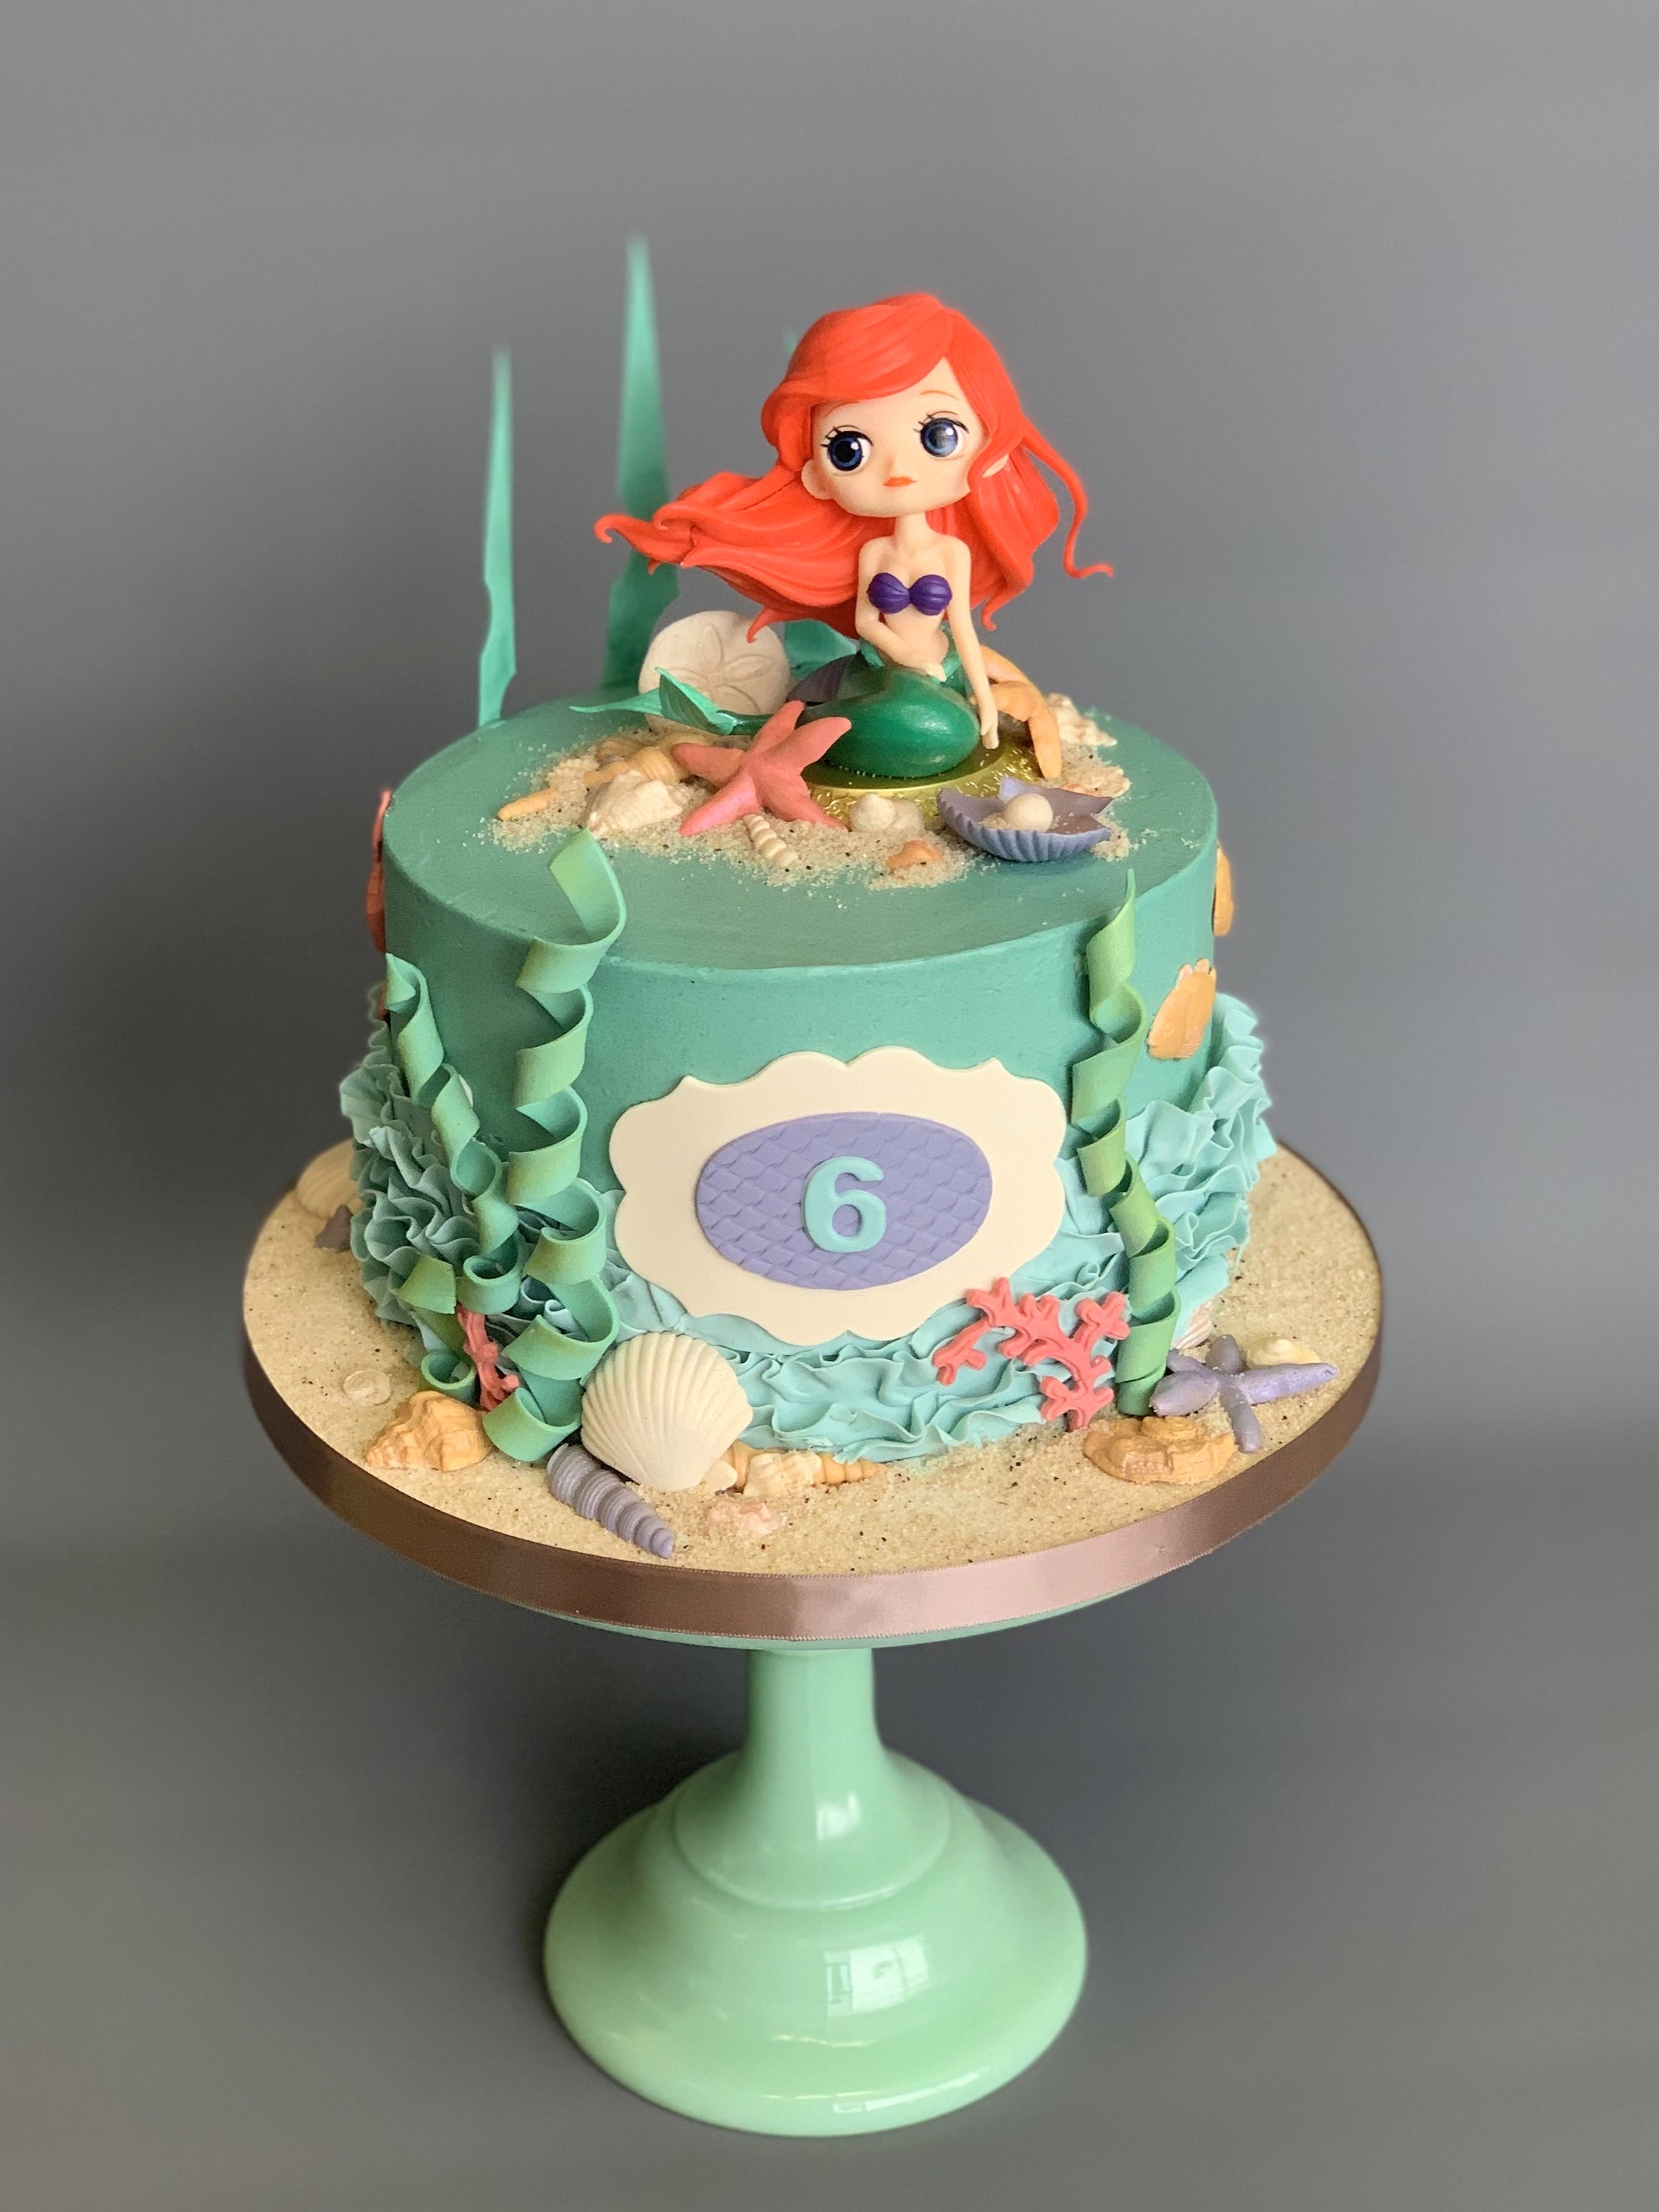 Mermaid Cake Image Copyright Carla Schier